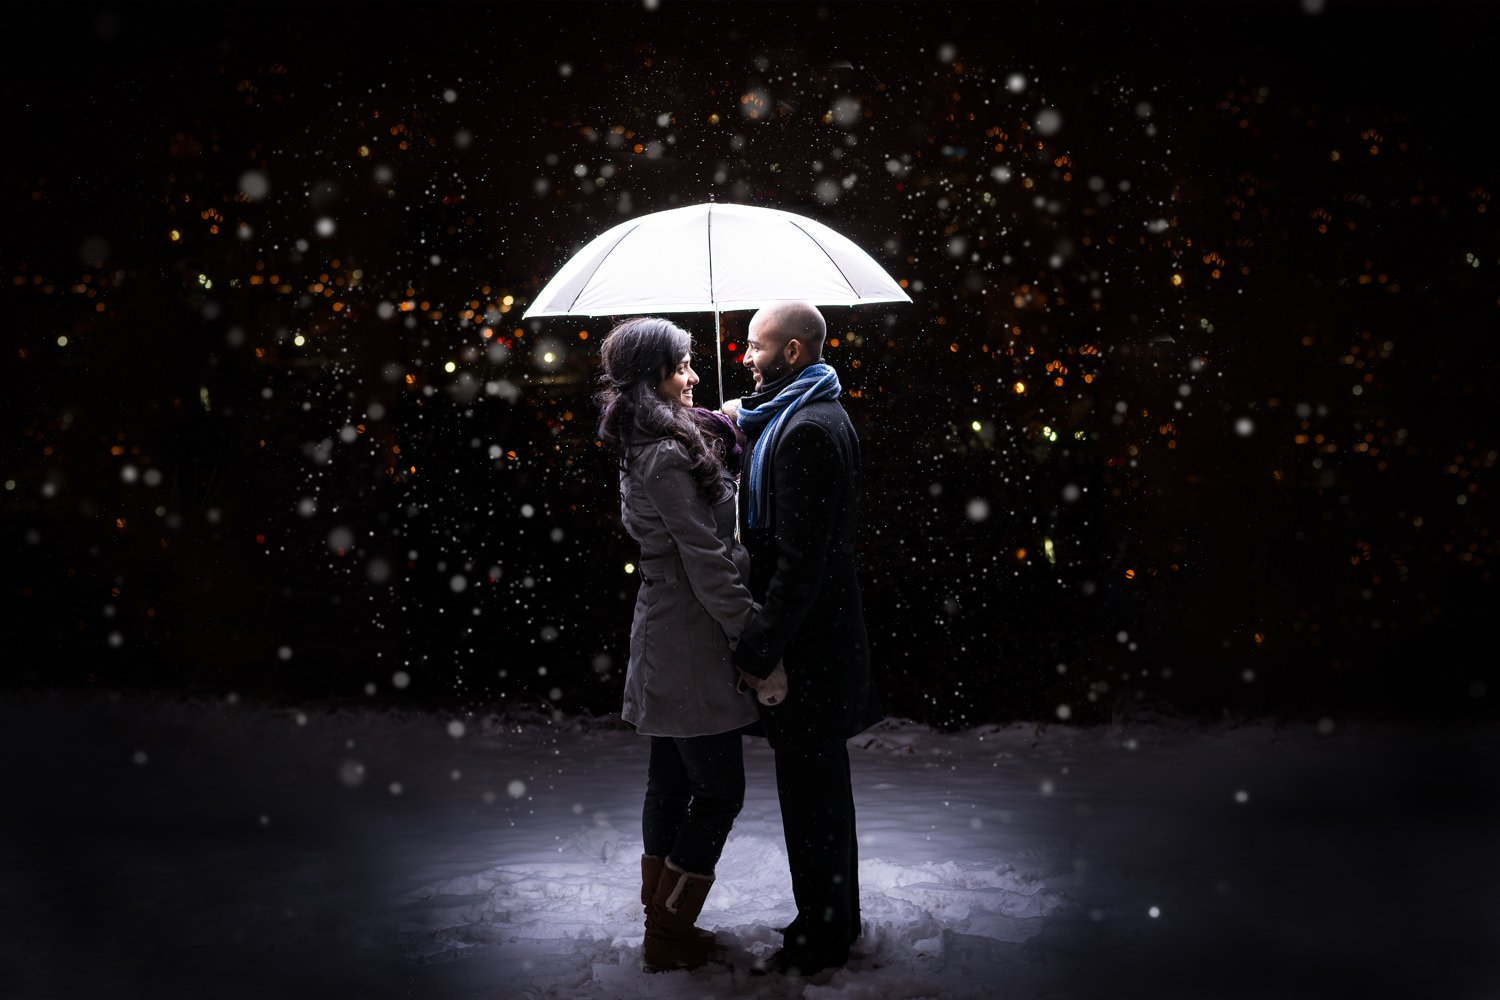 engagement session at saskatchewan drive couple standing under umbrella with snow falling in the background magical photo